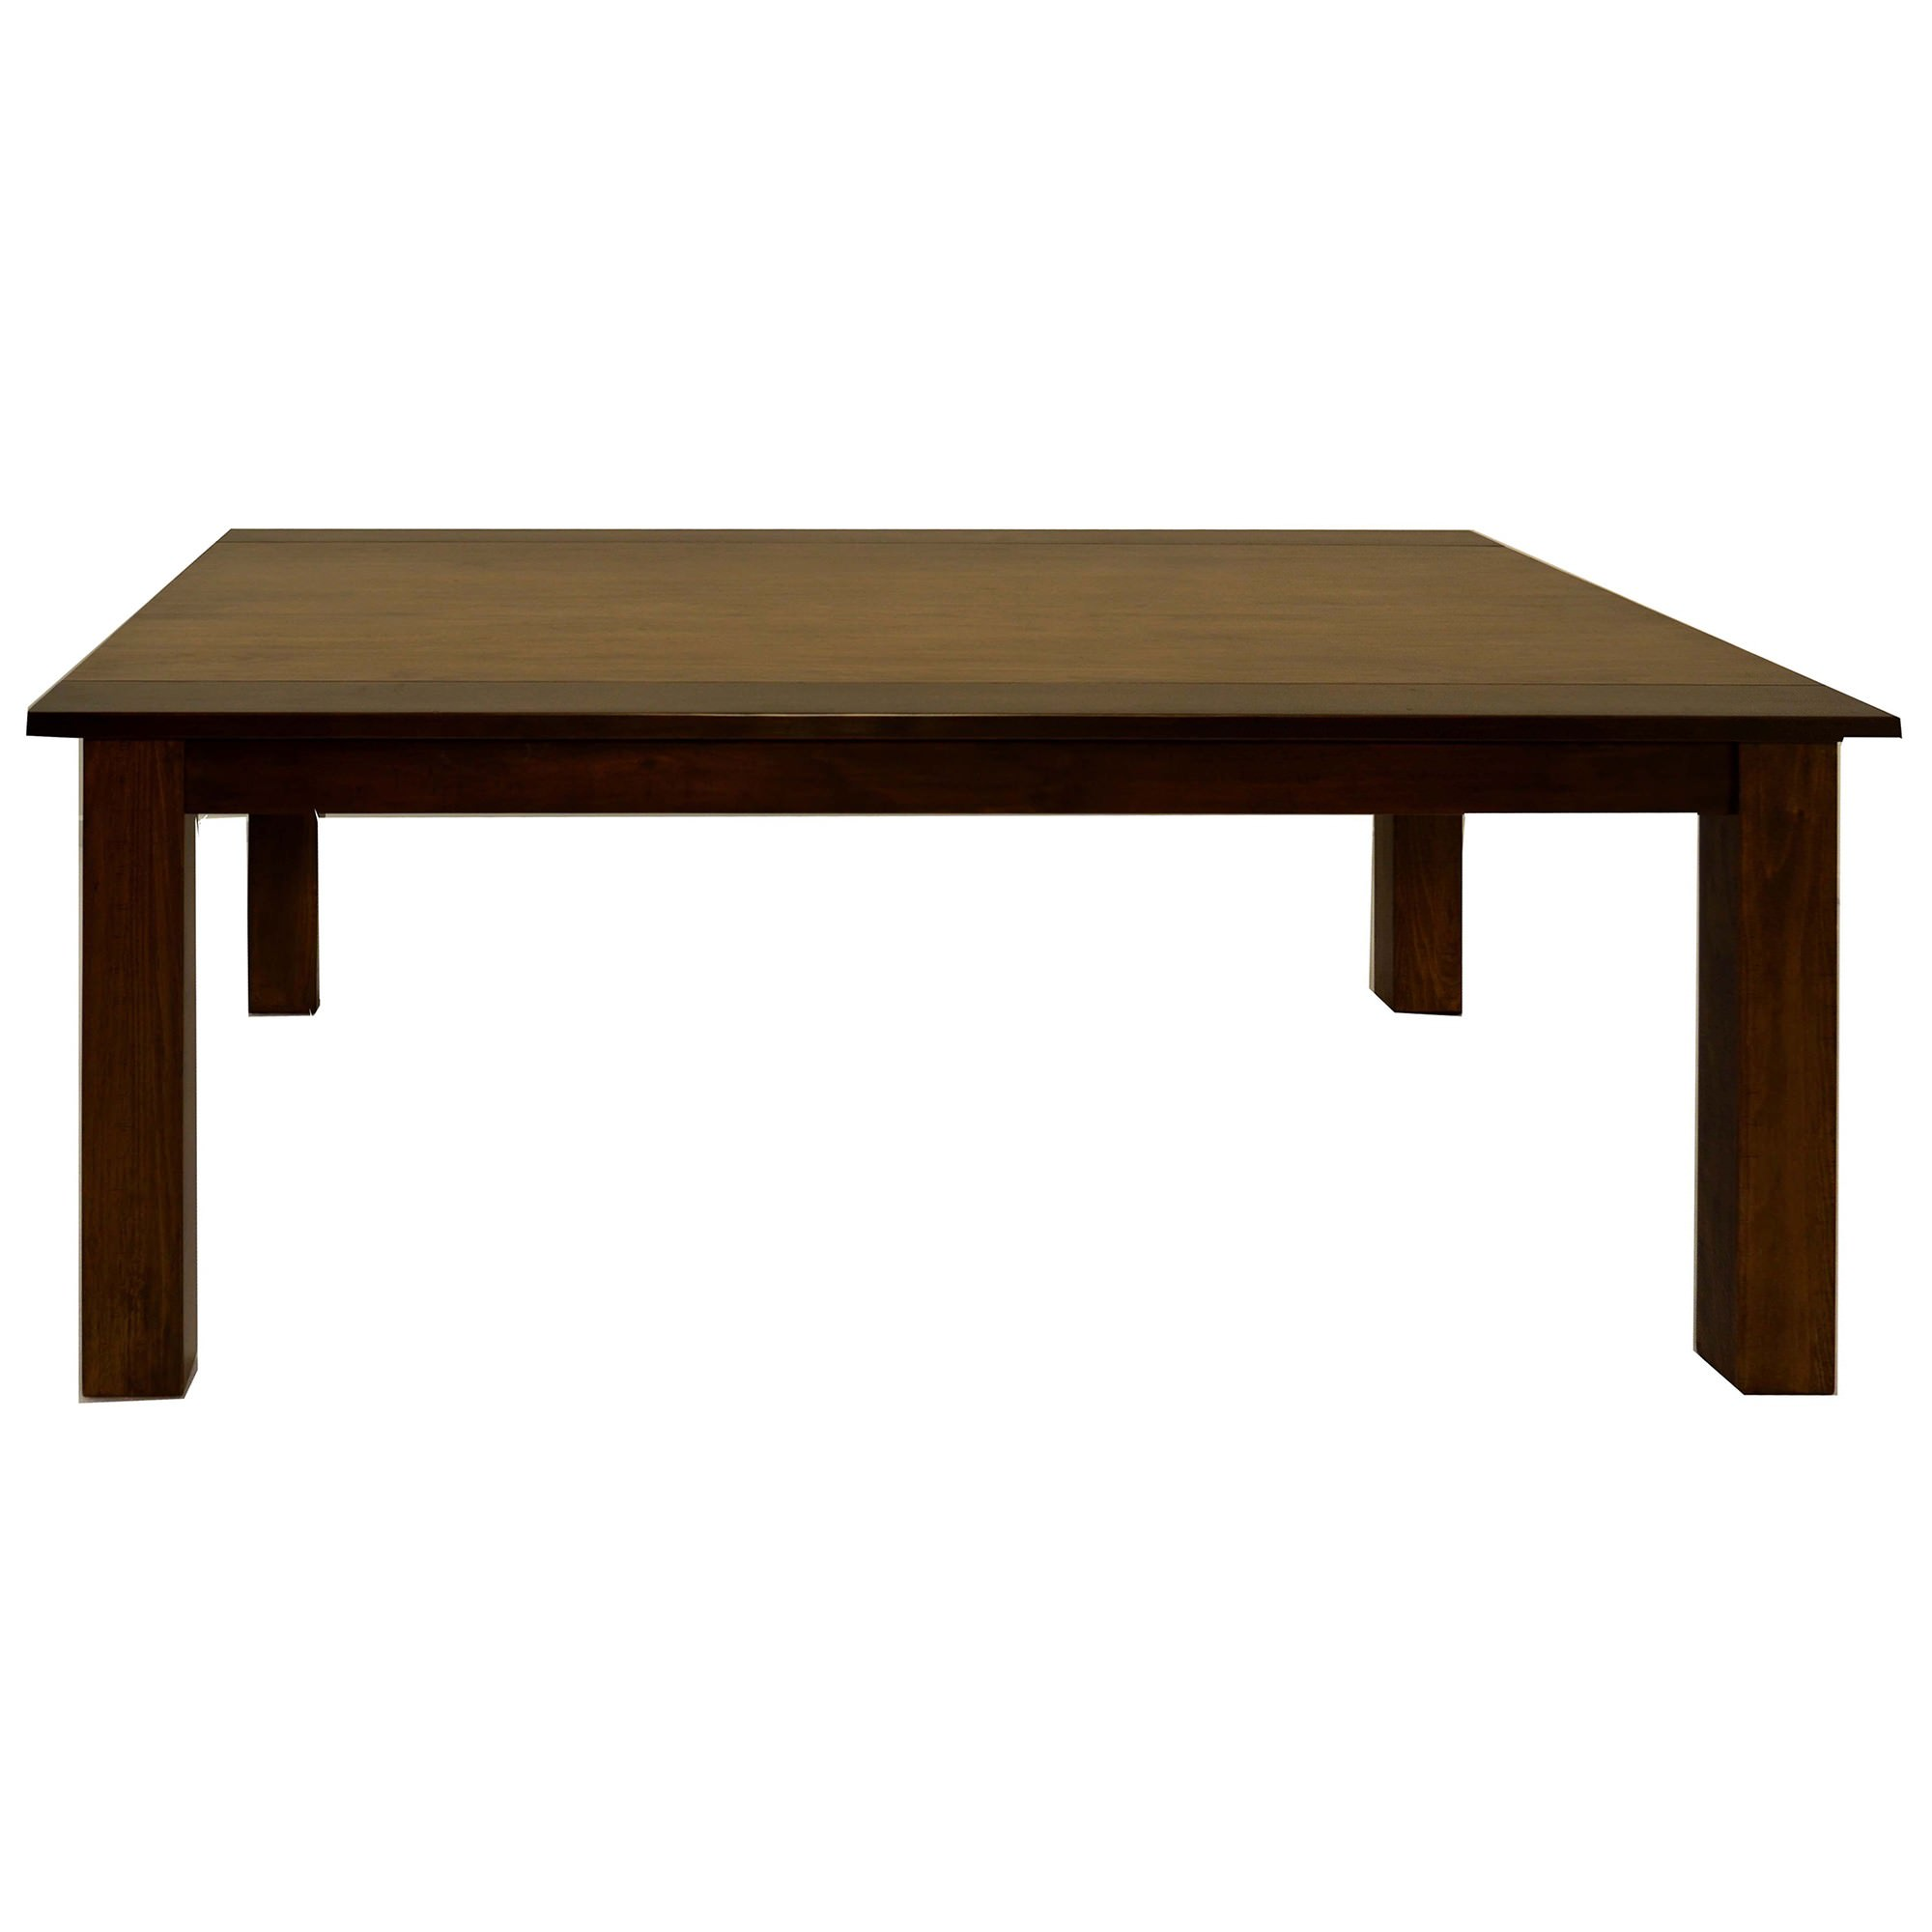 Huesca Mountain Ash Timber Dining Table, 180cm